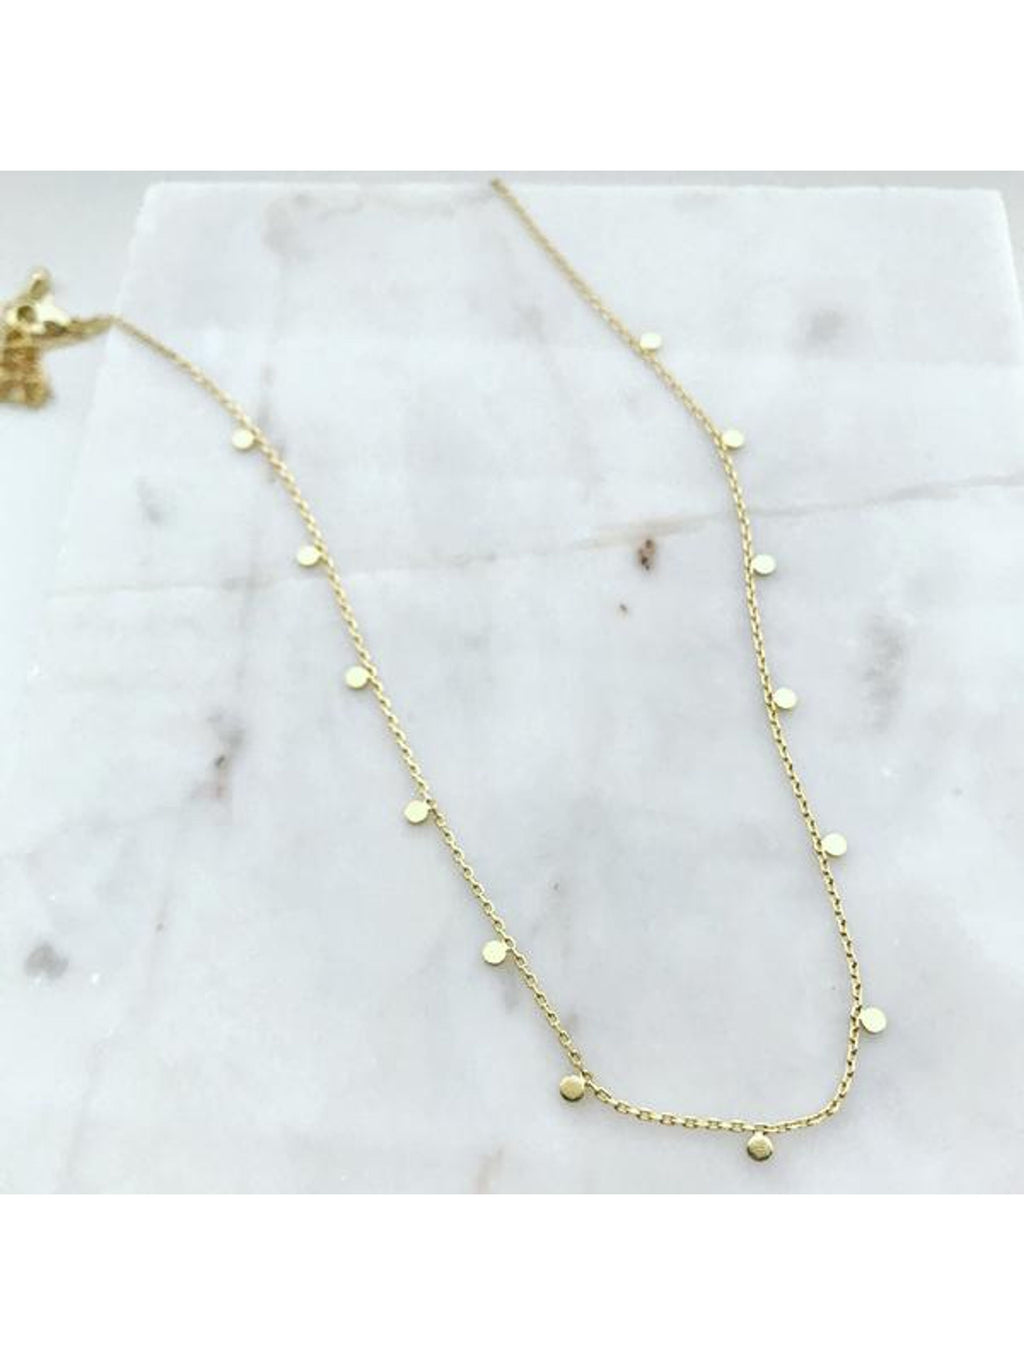 Floating Dainty Coin Necklace